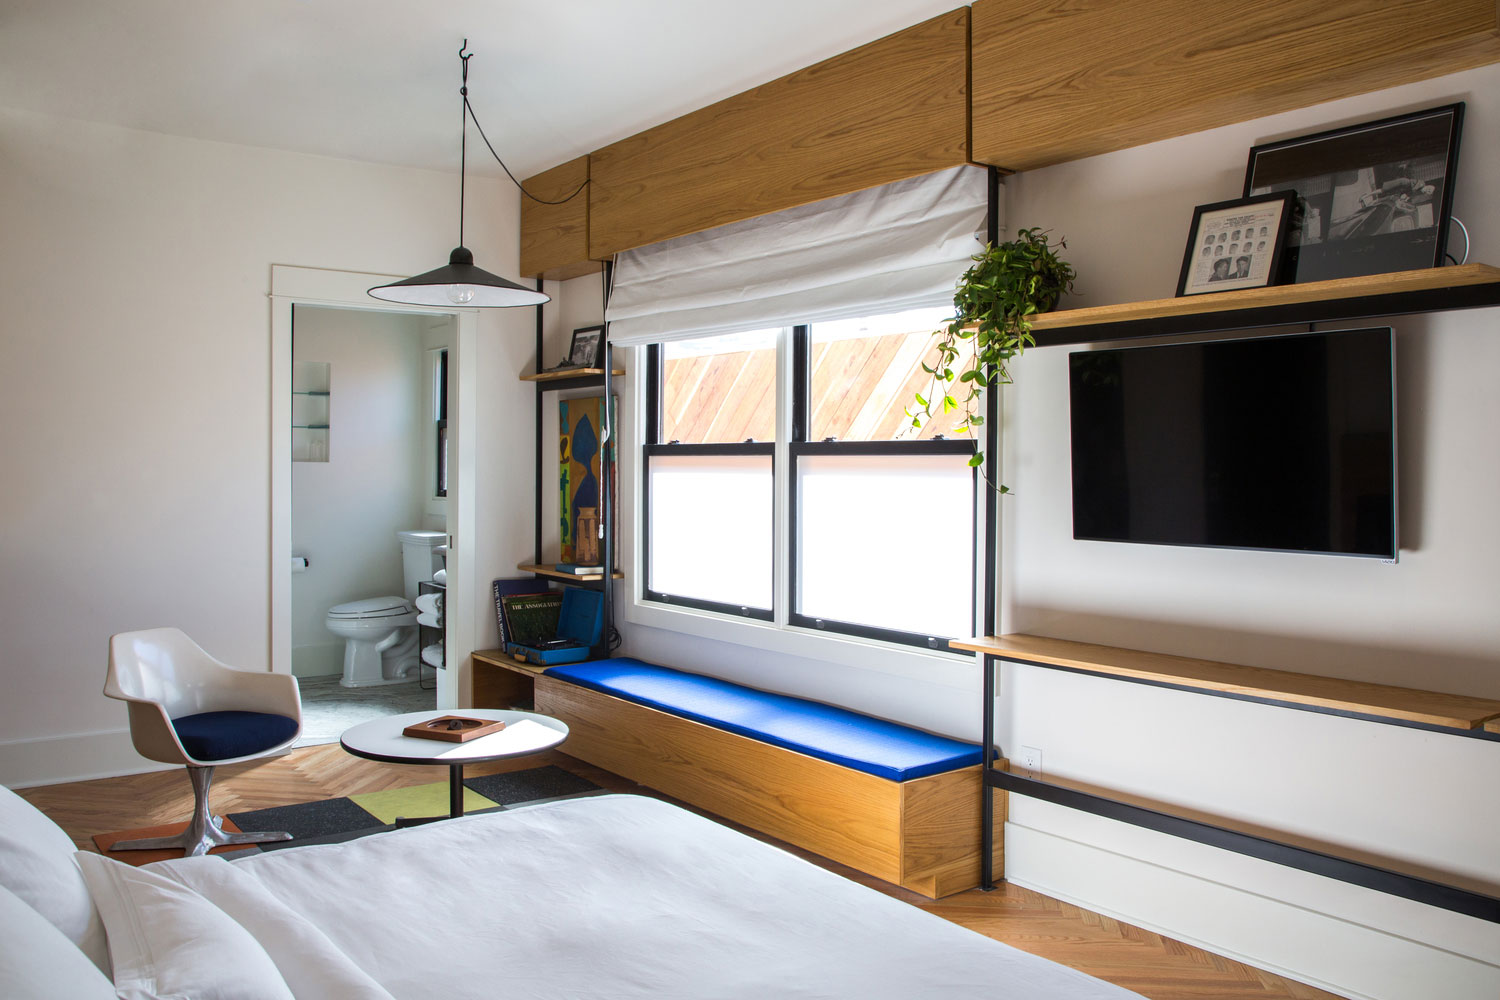 Hotel Covell in LA   Yellowtrace